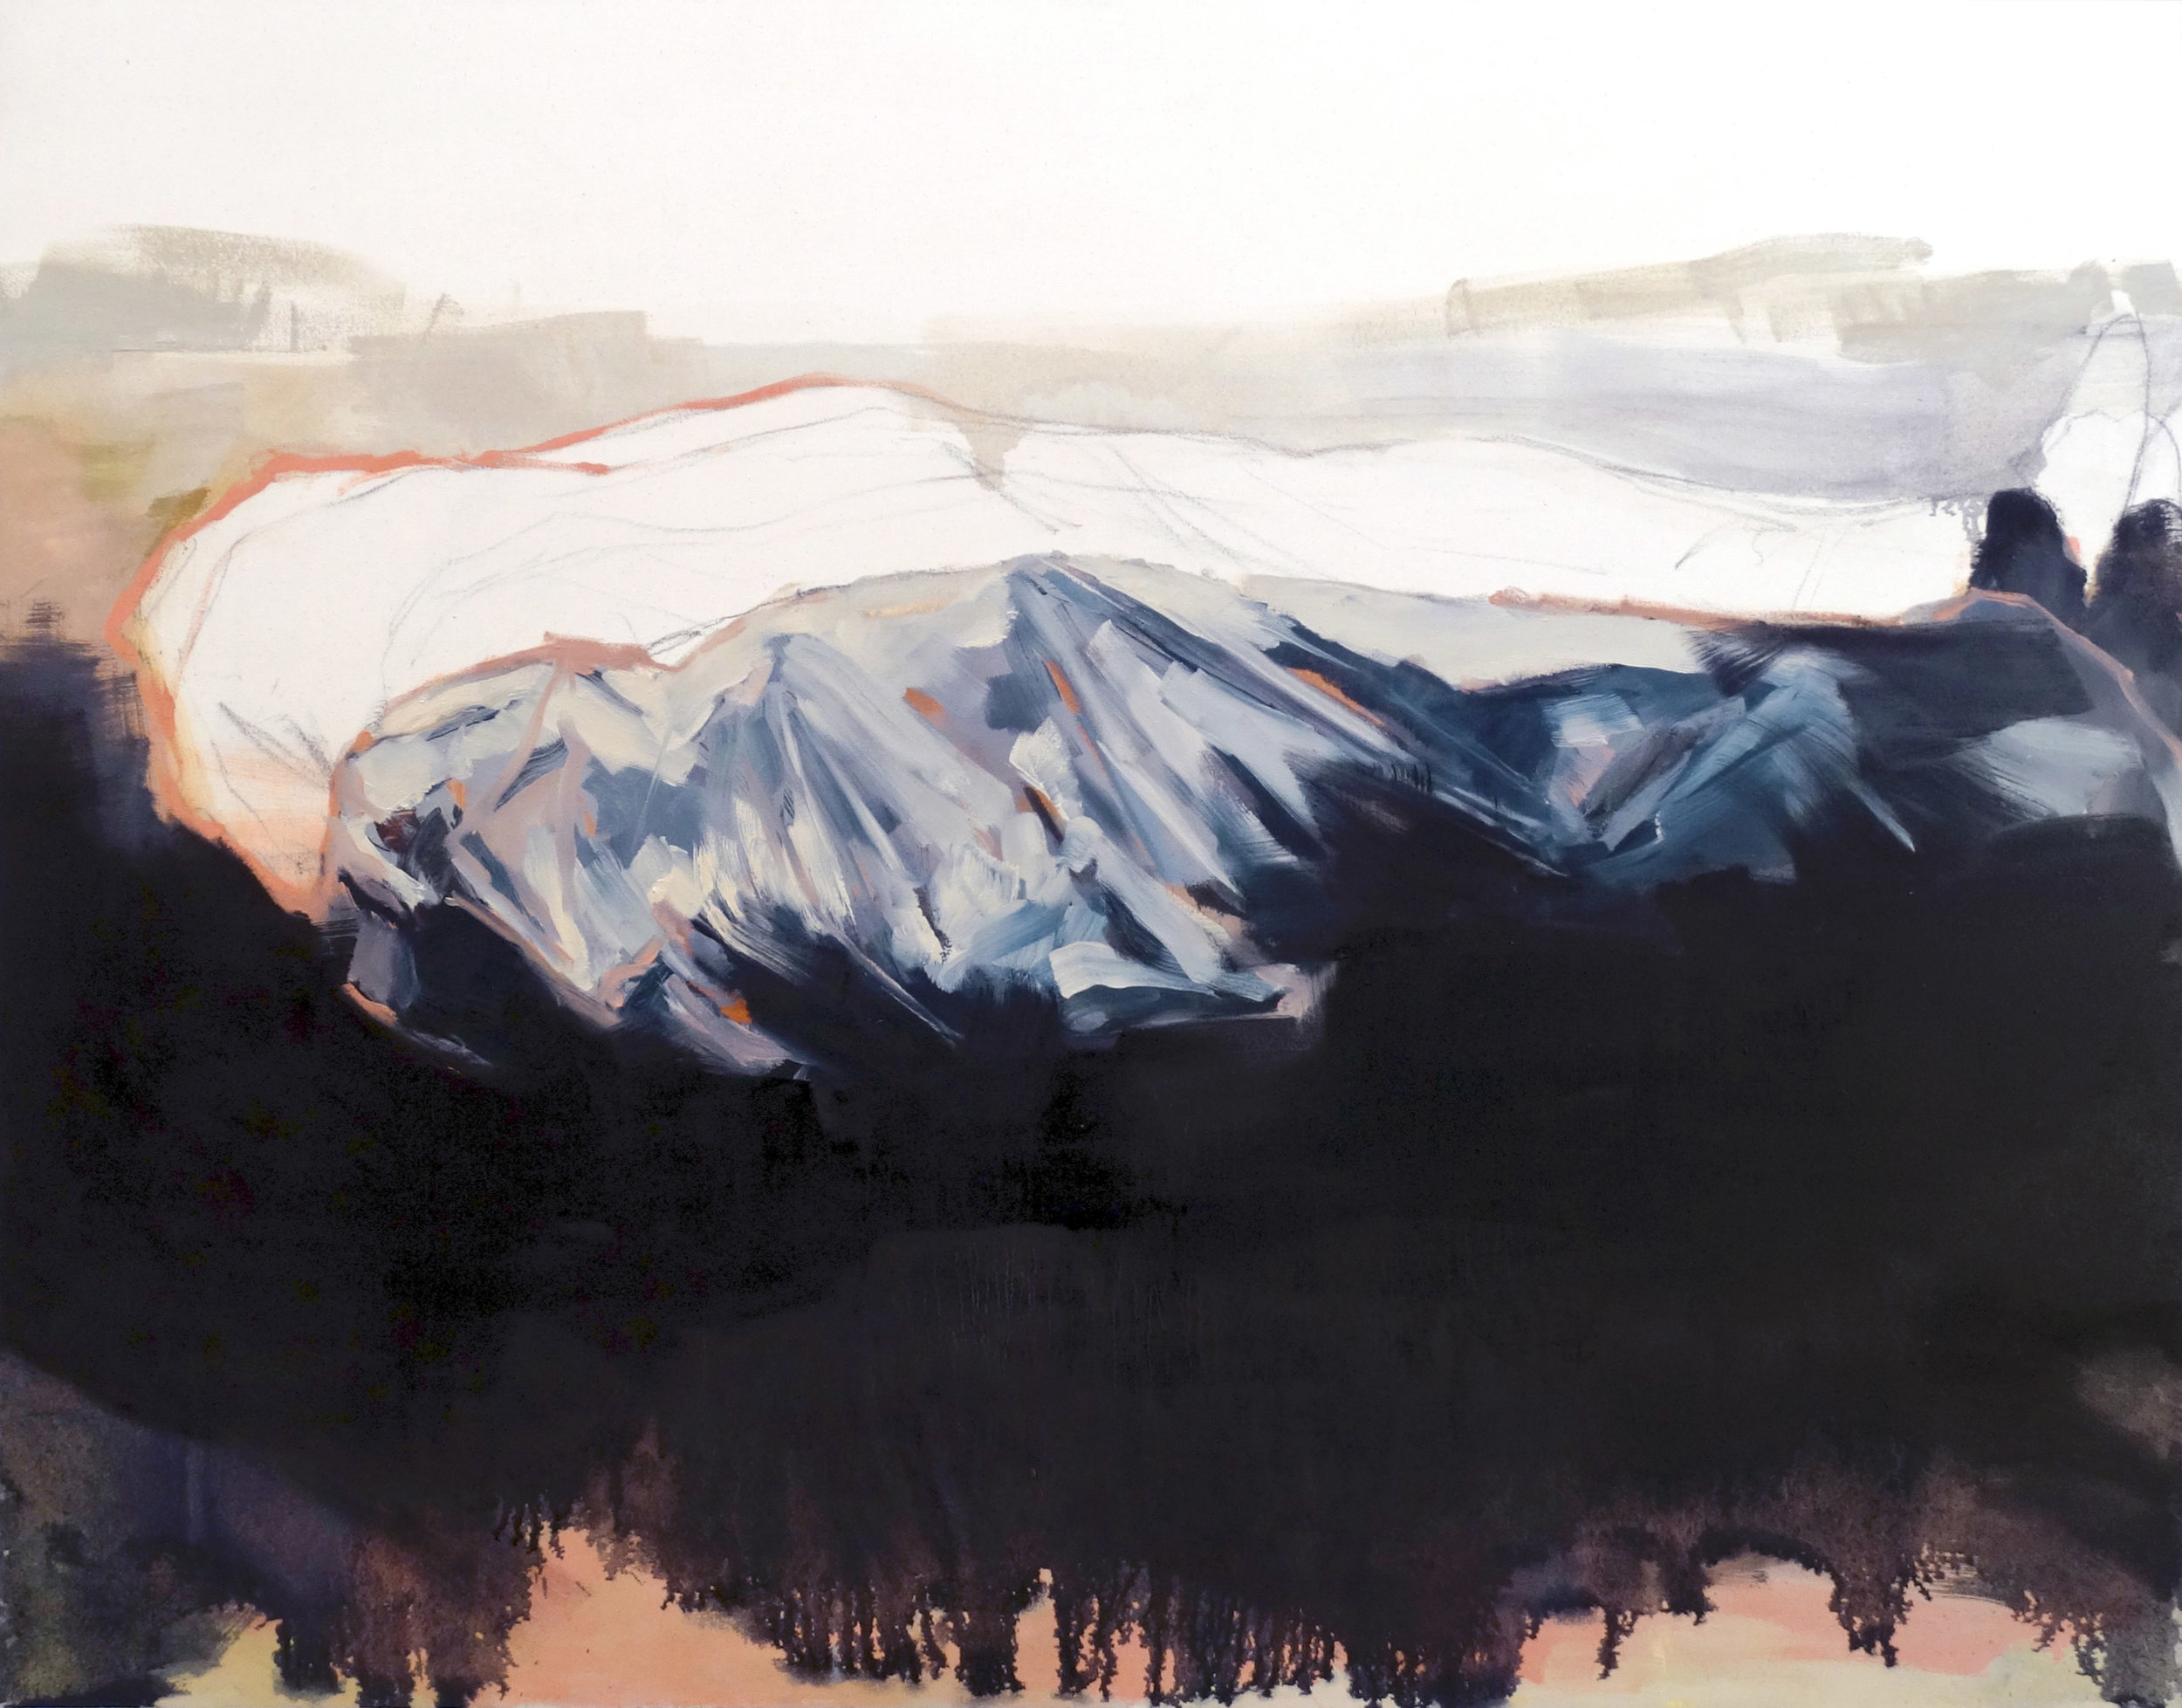 """$600   """"Sunrise on Fanore Beach""""  oil and charcoal on stretched canvas  5 ft x 4 ft  2014"""